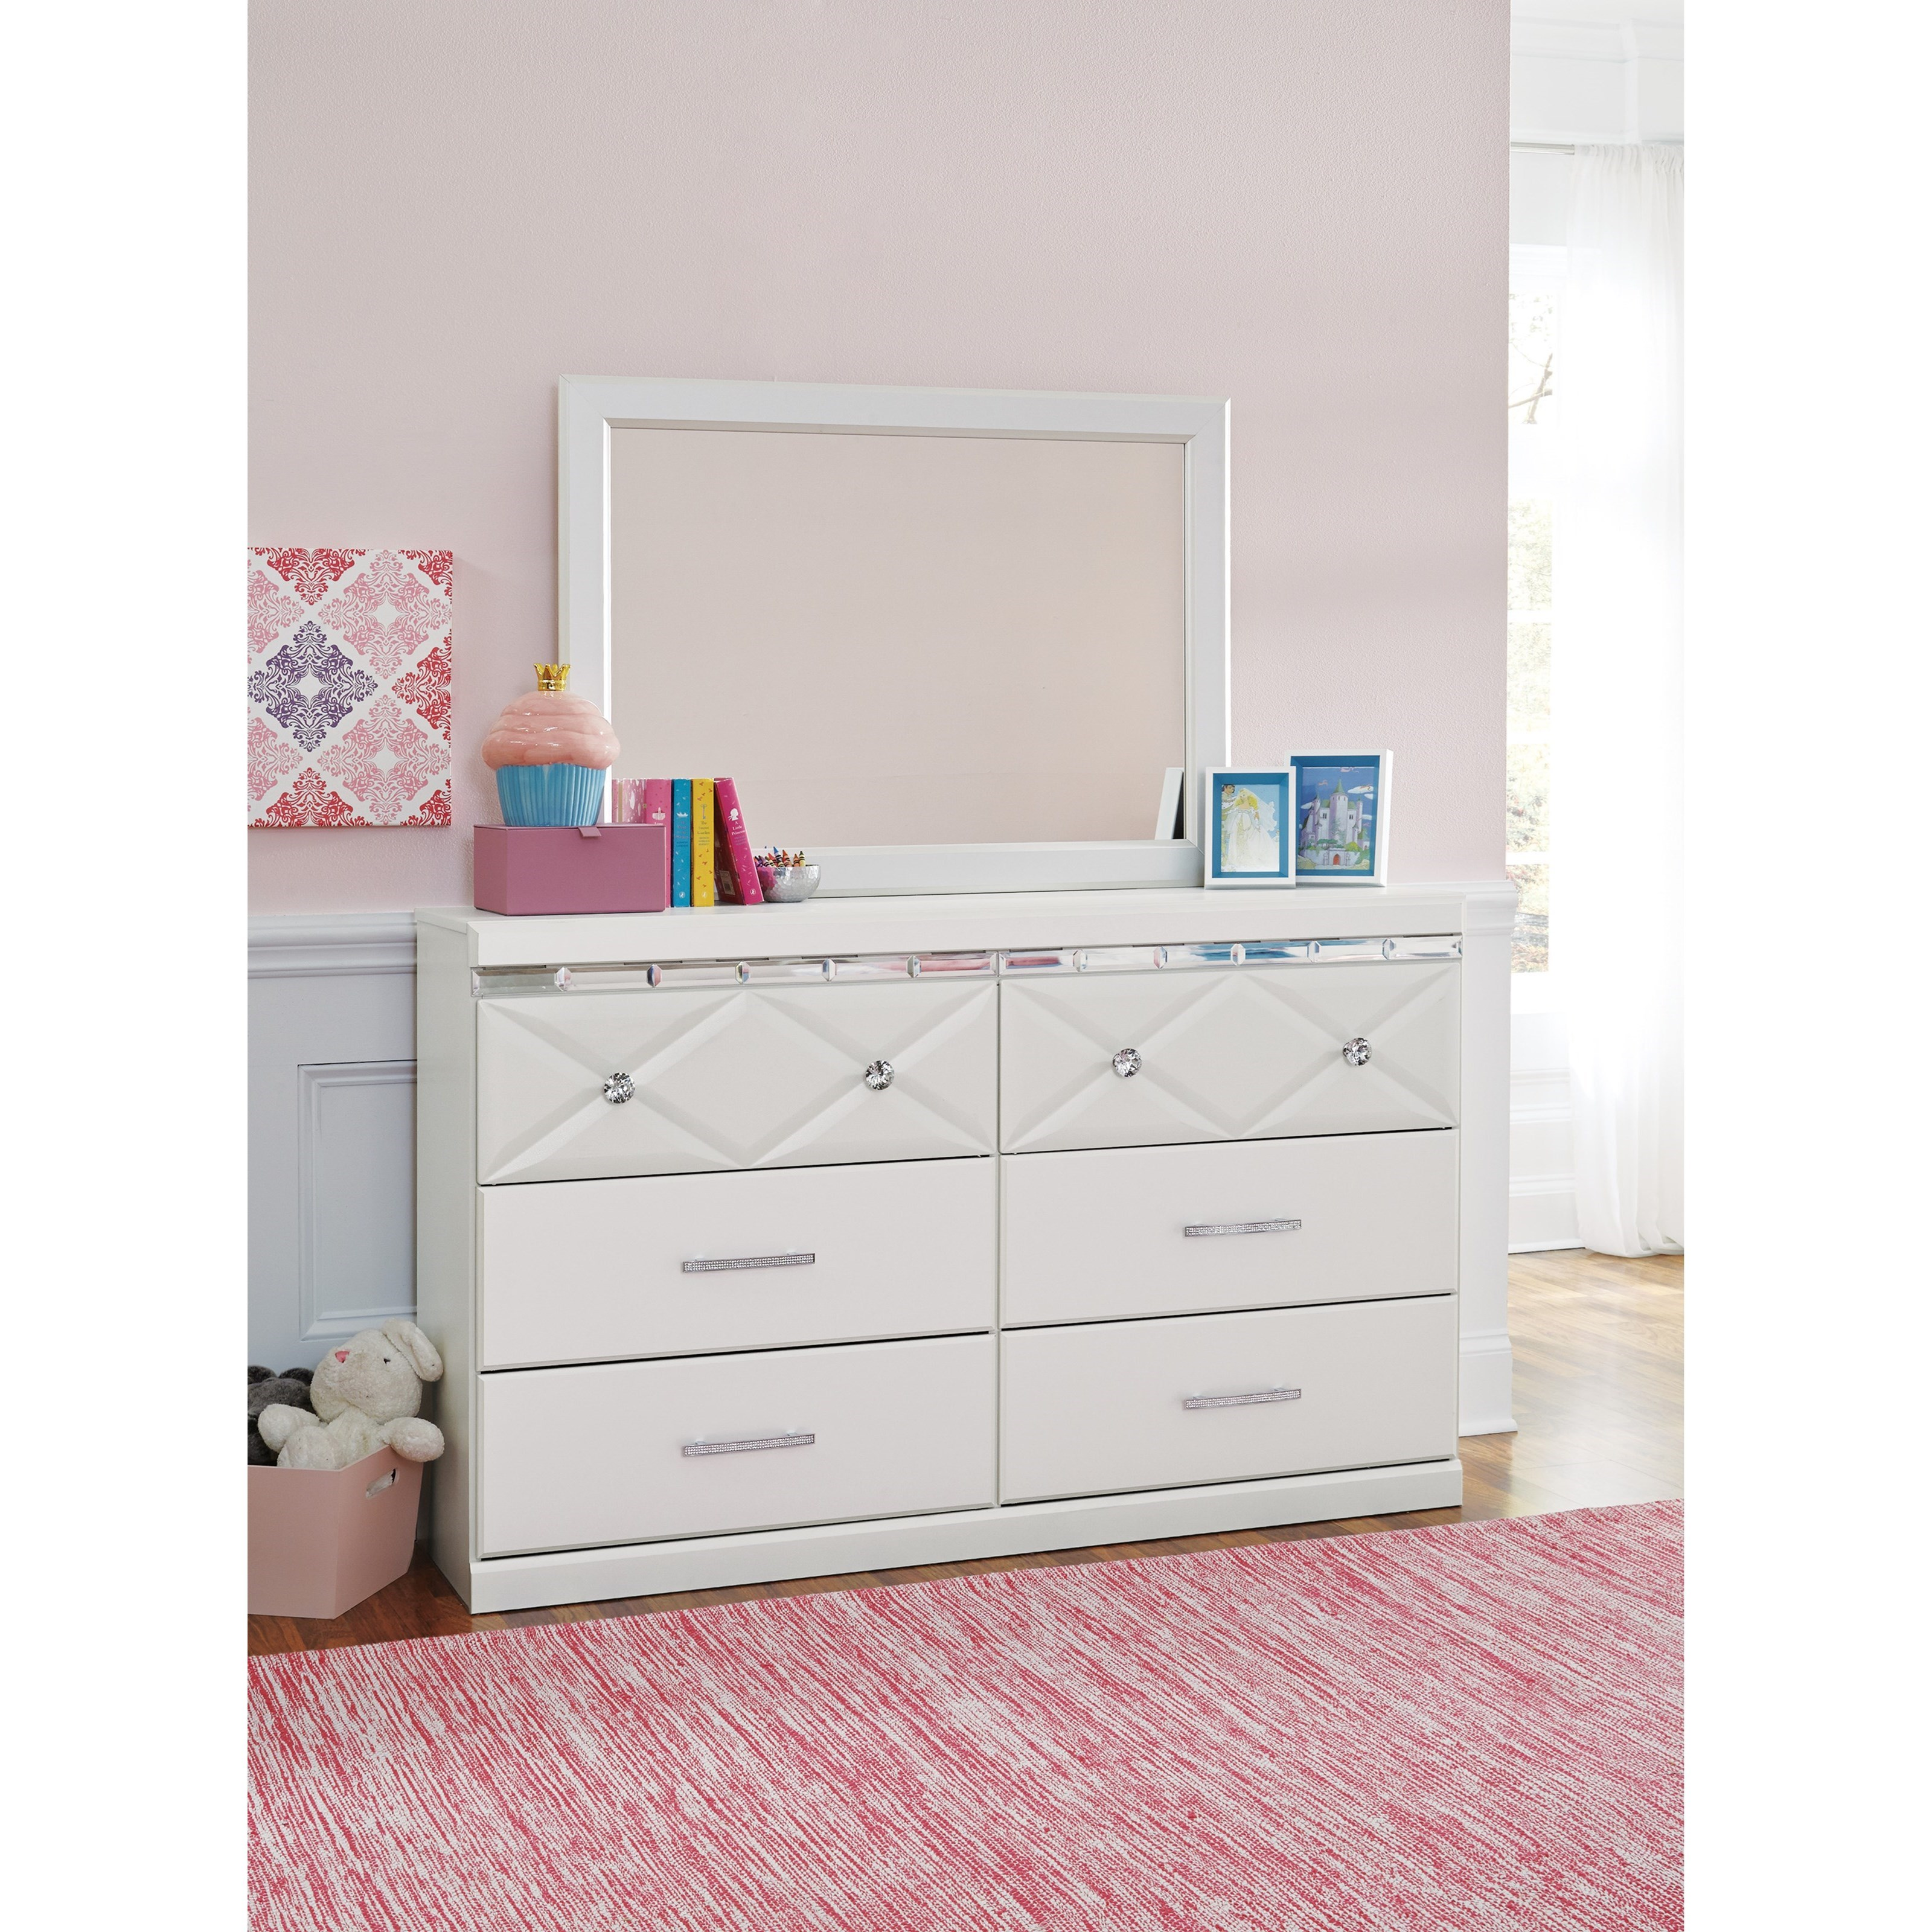 6 Drawer Dresser With Faux Crystal Accents By Signature